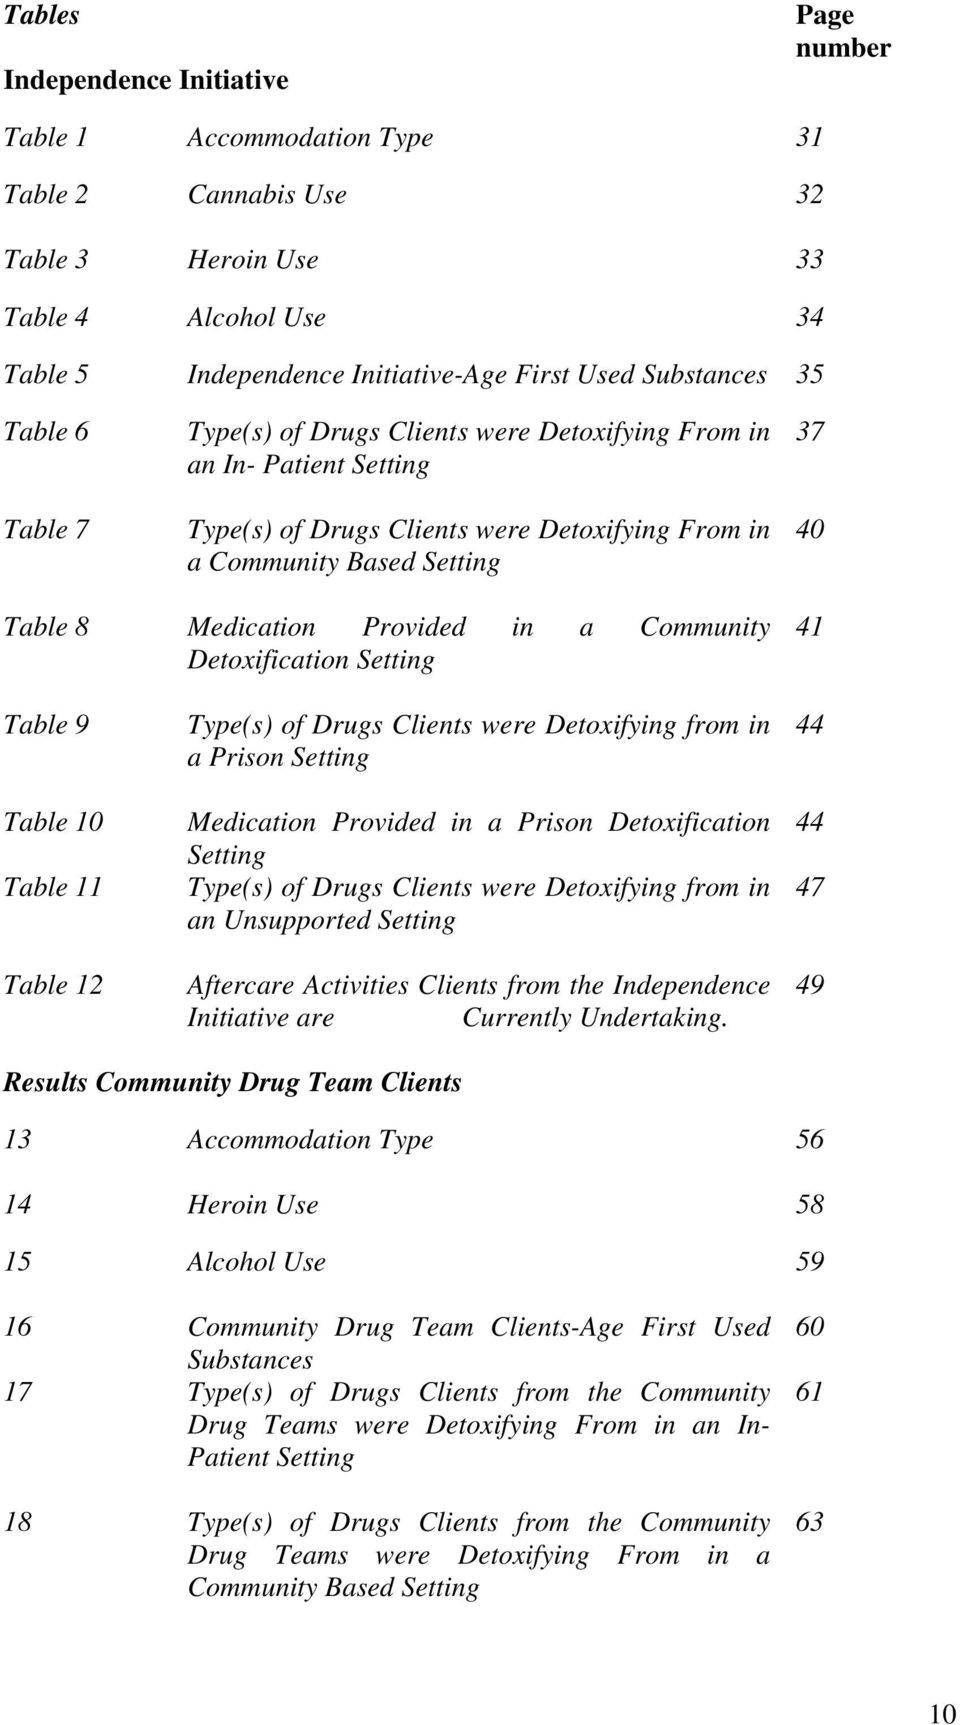 Provided in a Community Detoxification Setting 41 Table 9 Table 10 Table 11 Table 12 Type(s) of Drugs Clients were Detoxifying from in a Prison Setting Medication Provided in a Prison Detoxification